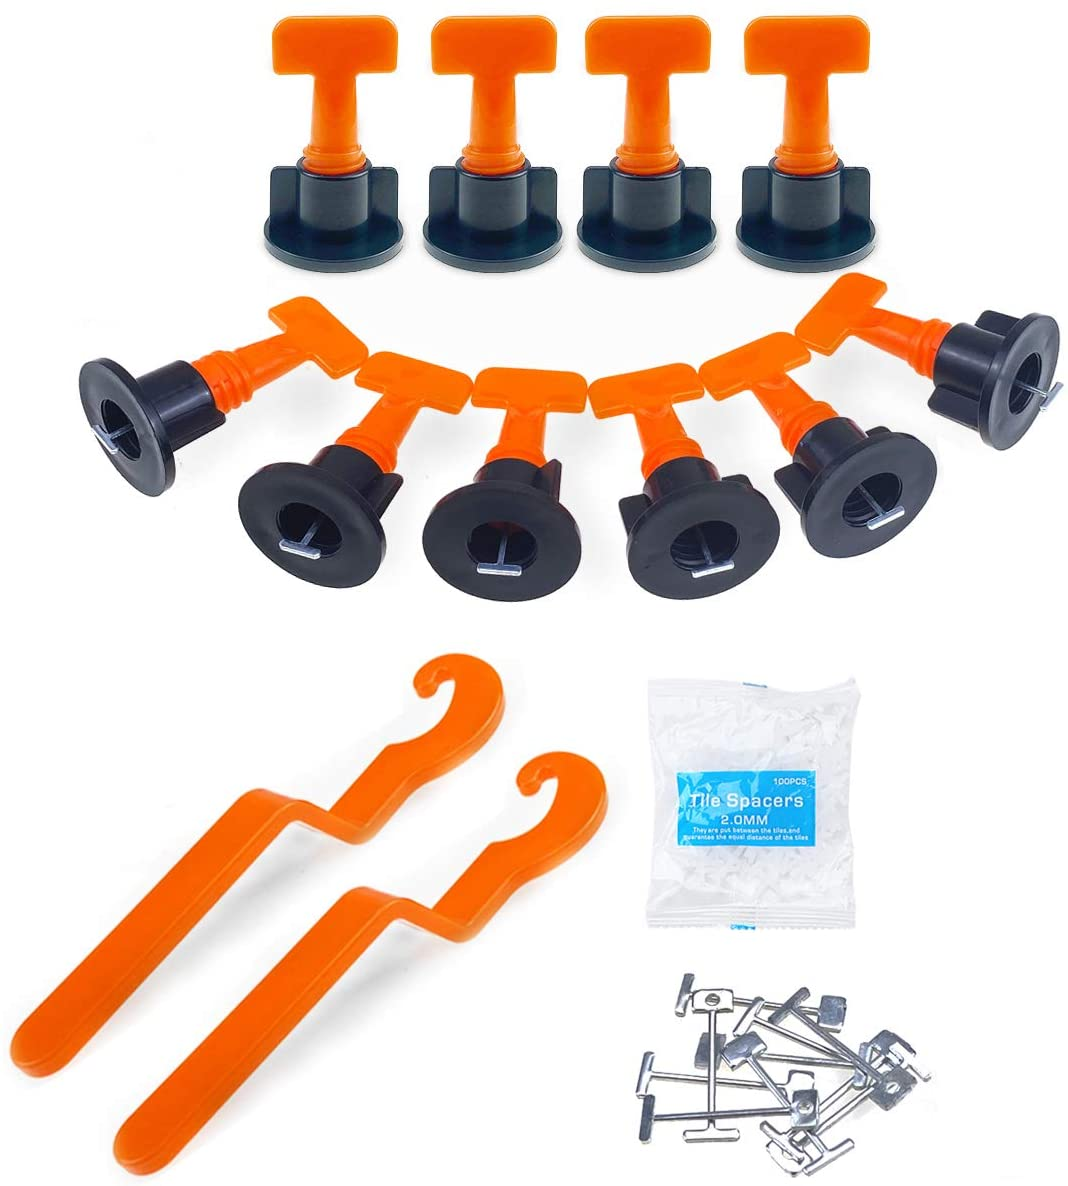 Tile Leveling System Kit with 100 Pcs Reusable Tile Leveler Spacers,500 Pcs 2mm Tile Spacers,2 Special Wrenches, and and 50 Pcs 1/16 Spare Steel Pin